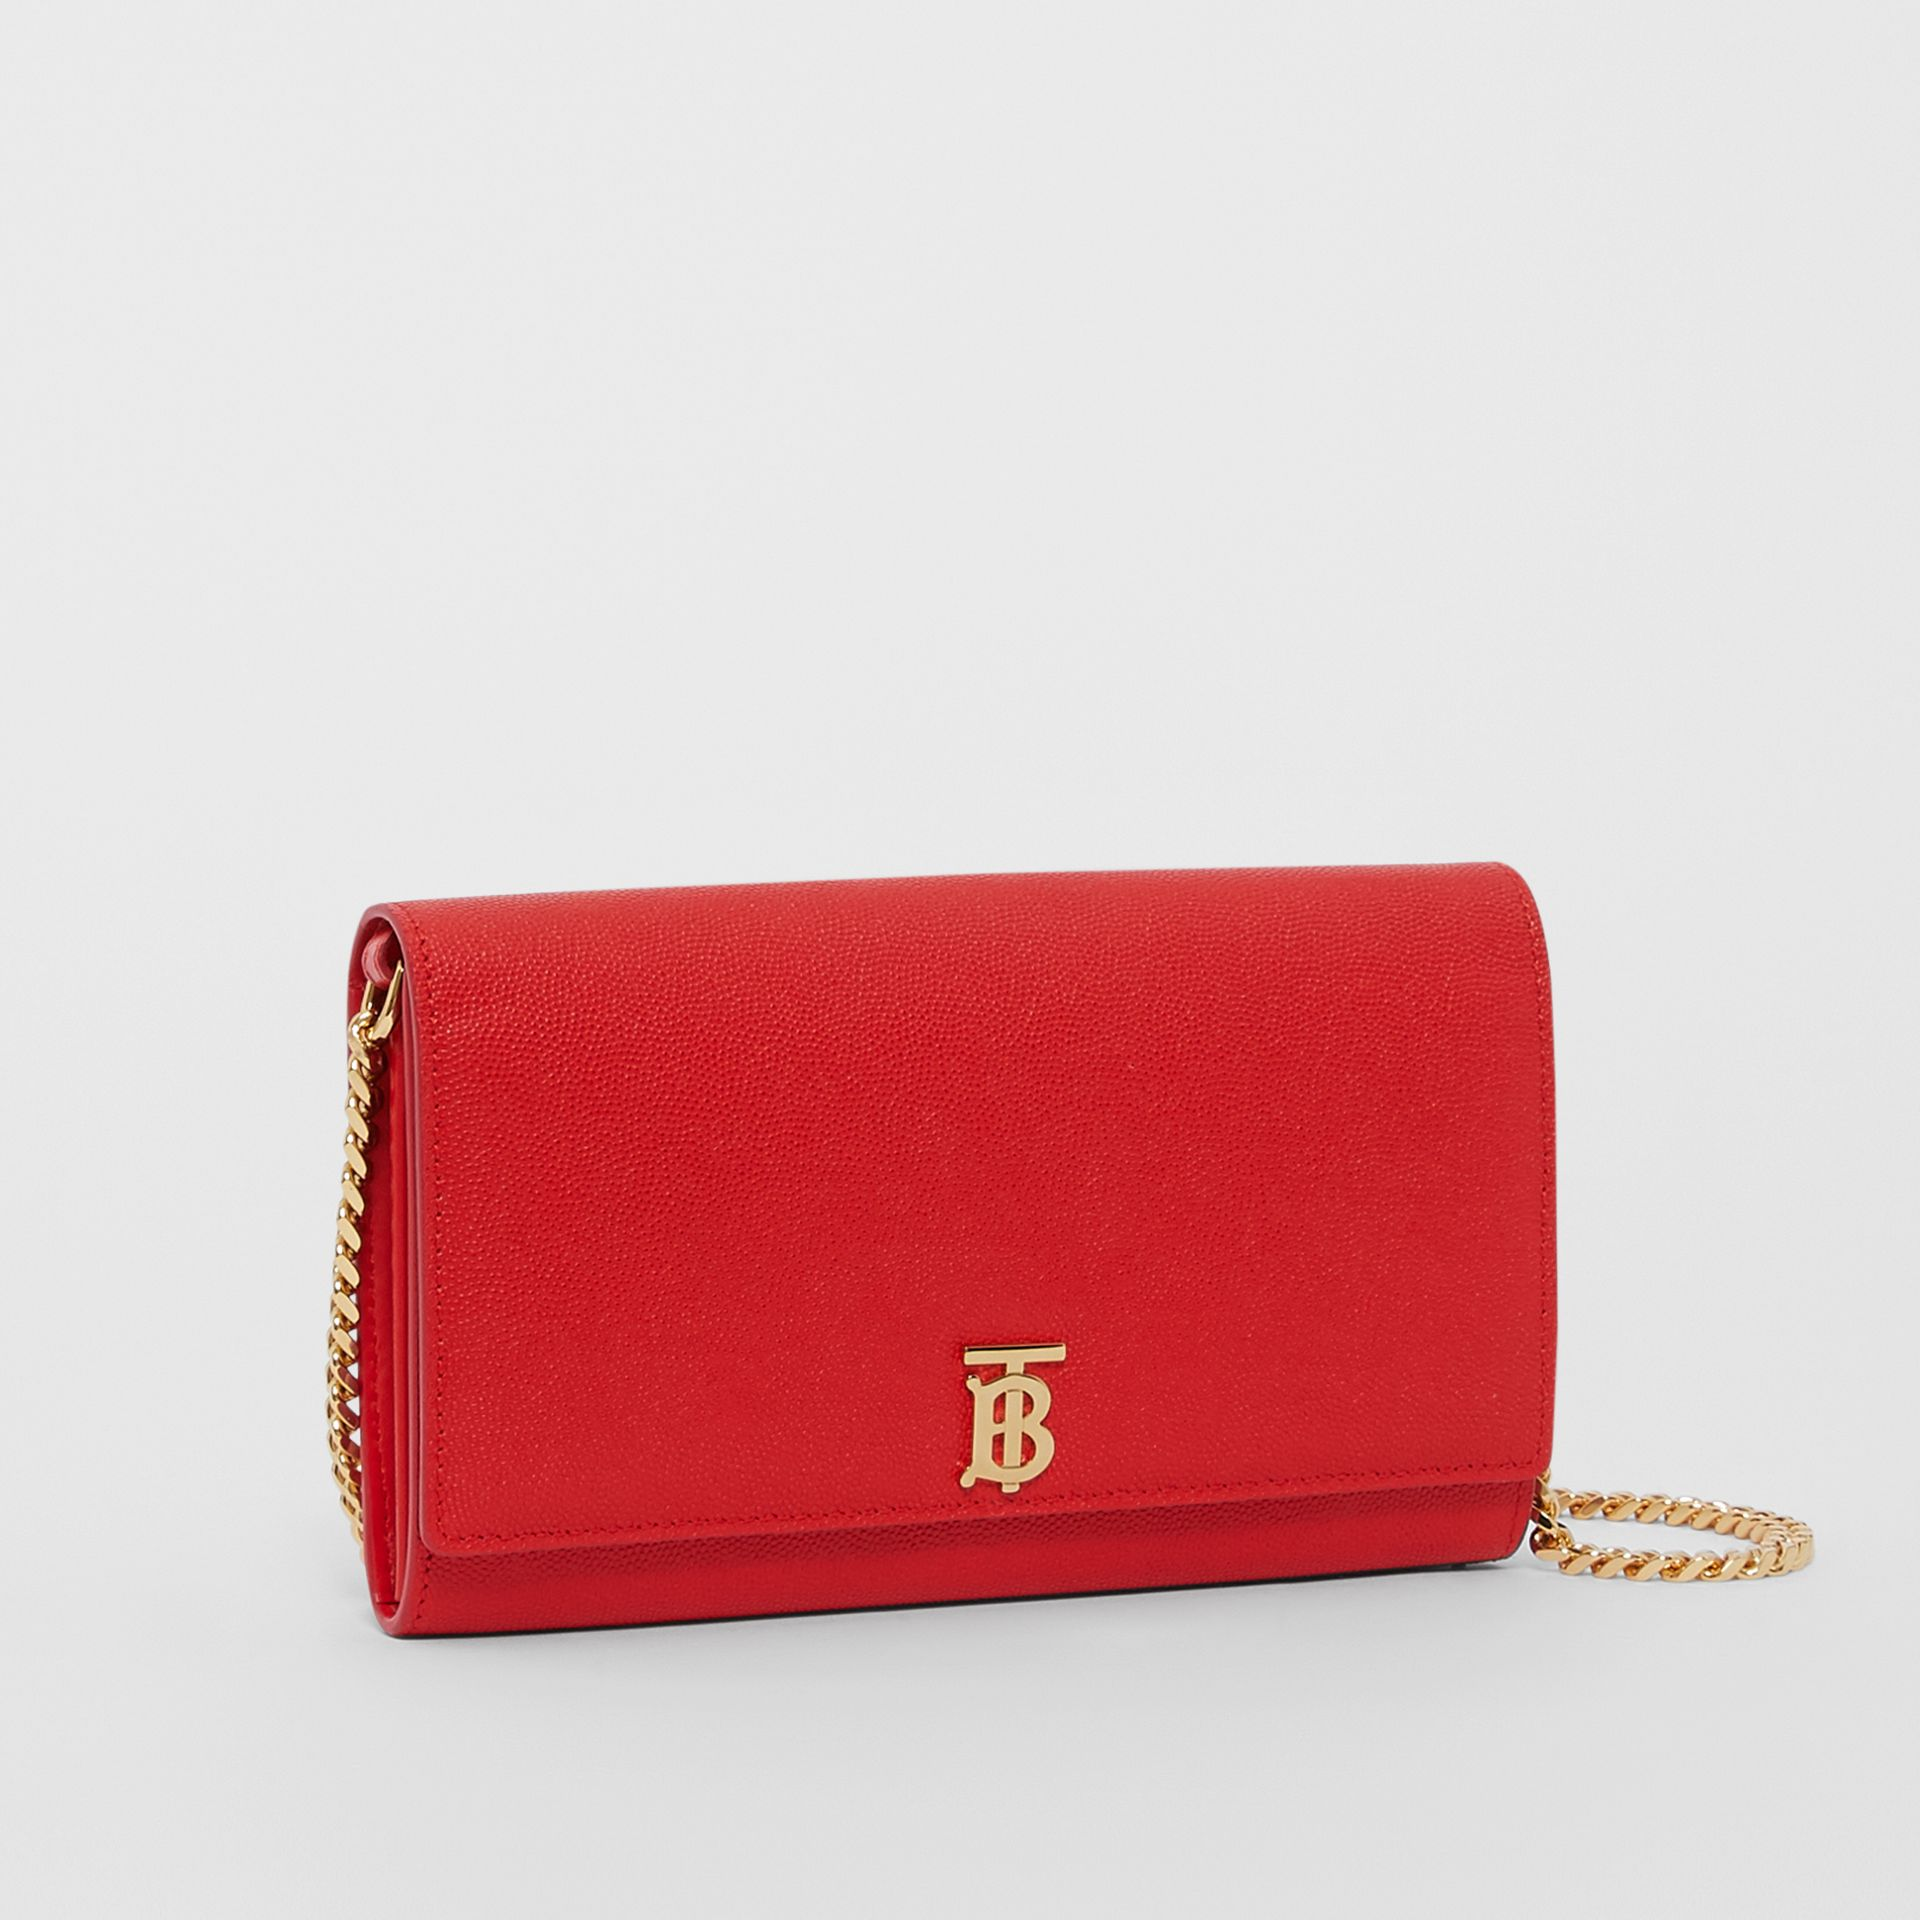 Monogram Motif Leather Wallet with Detachable Strap in Bright Red - Women | Burberry - gallery image 4